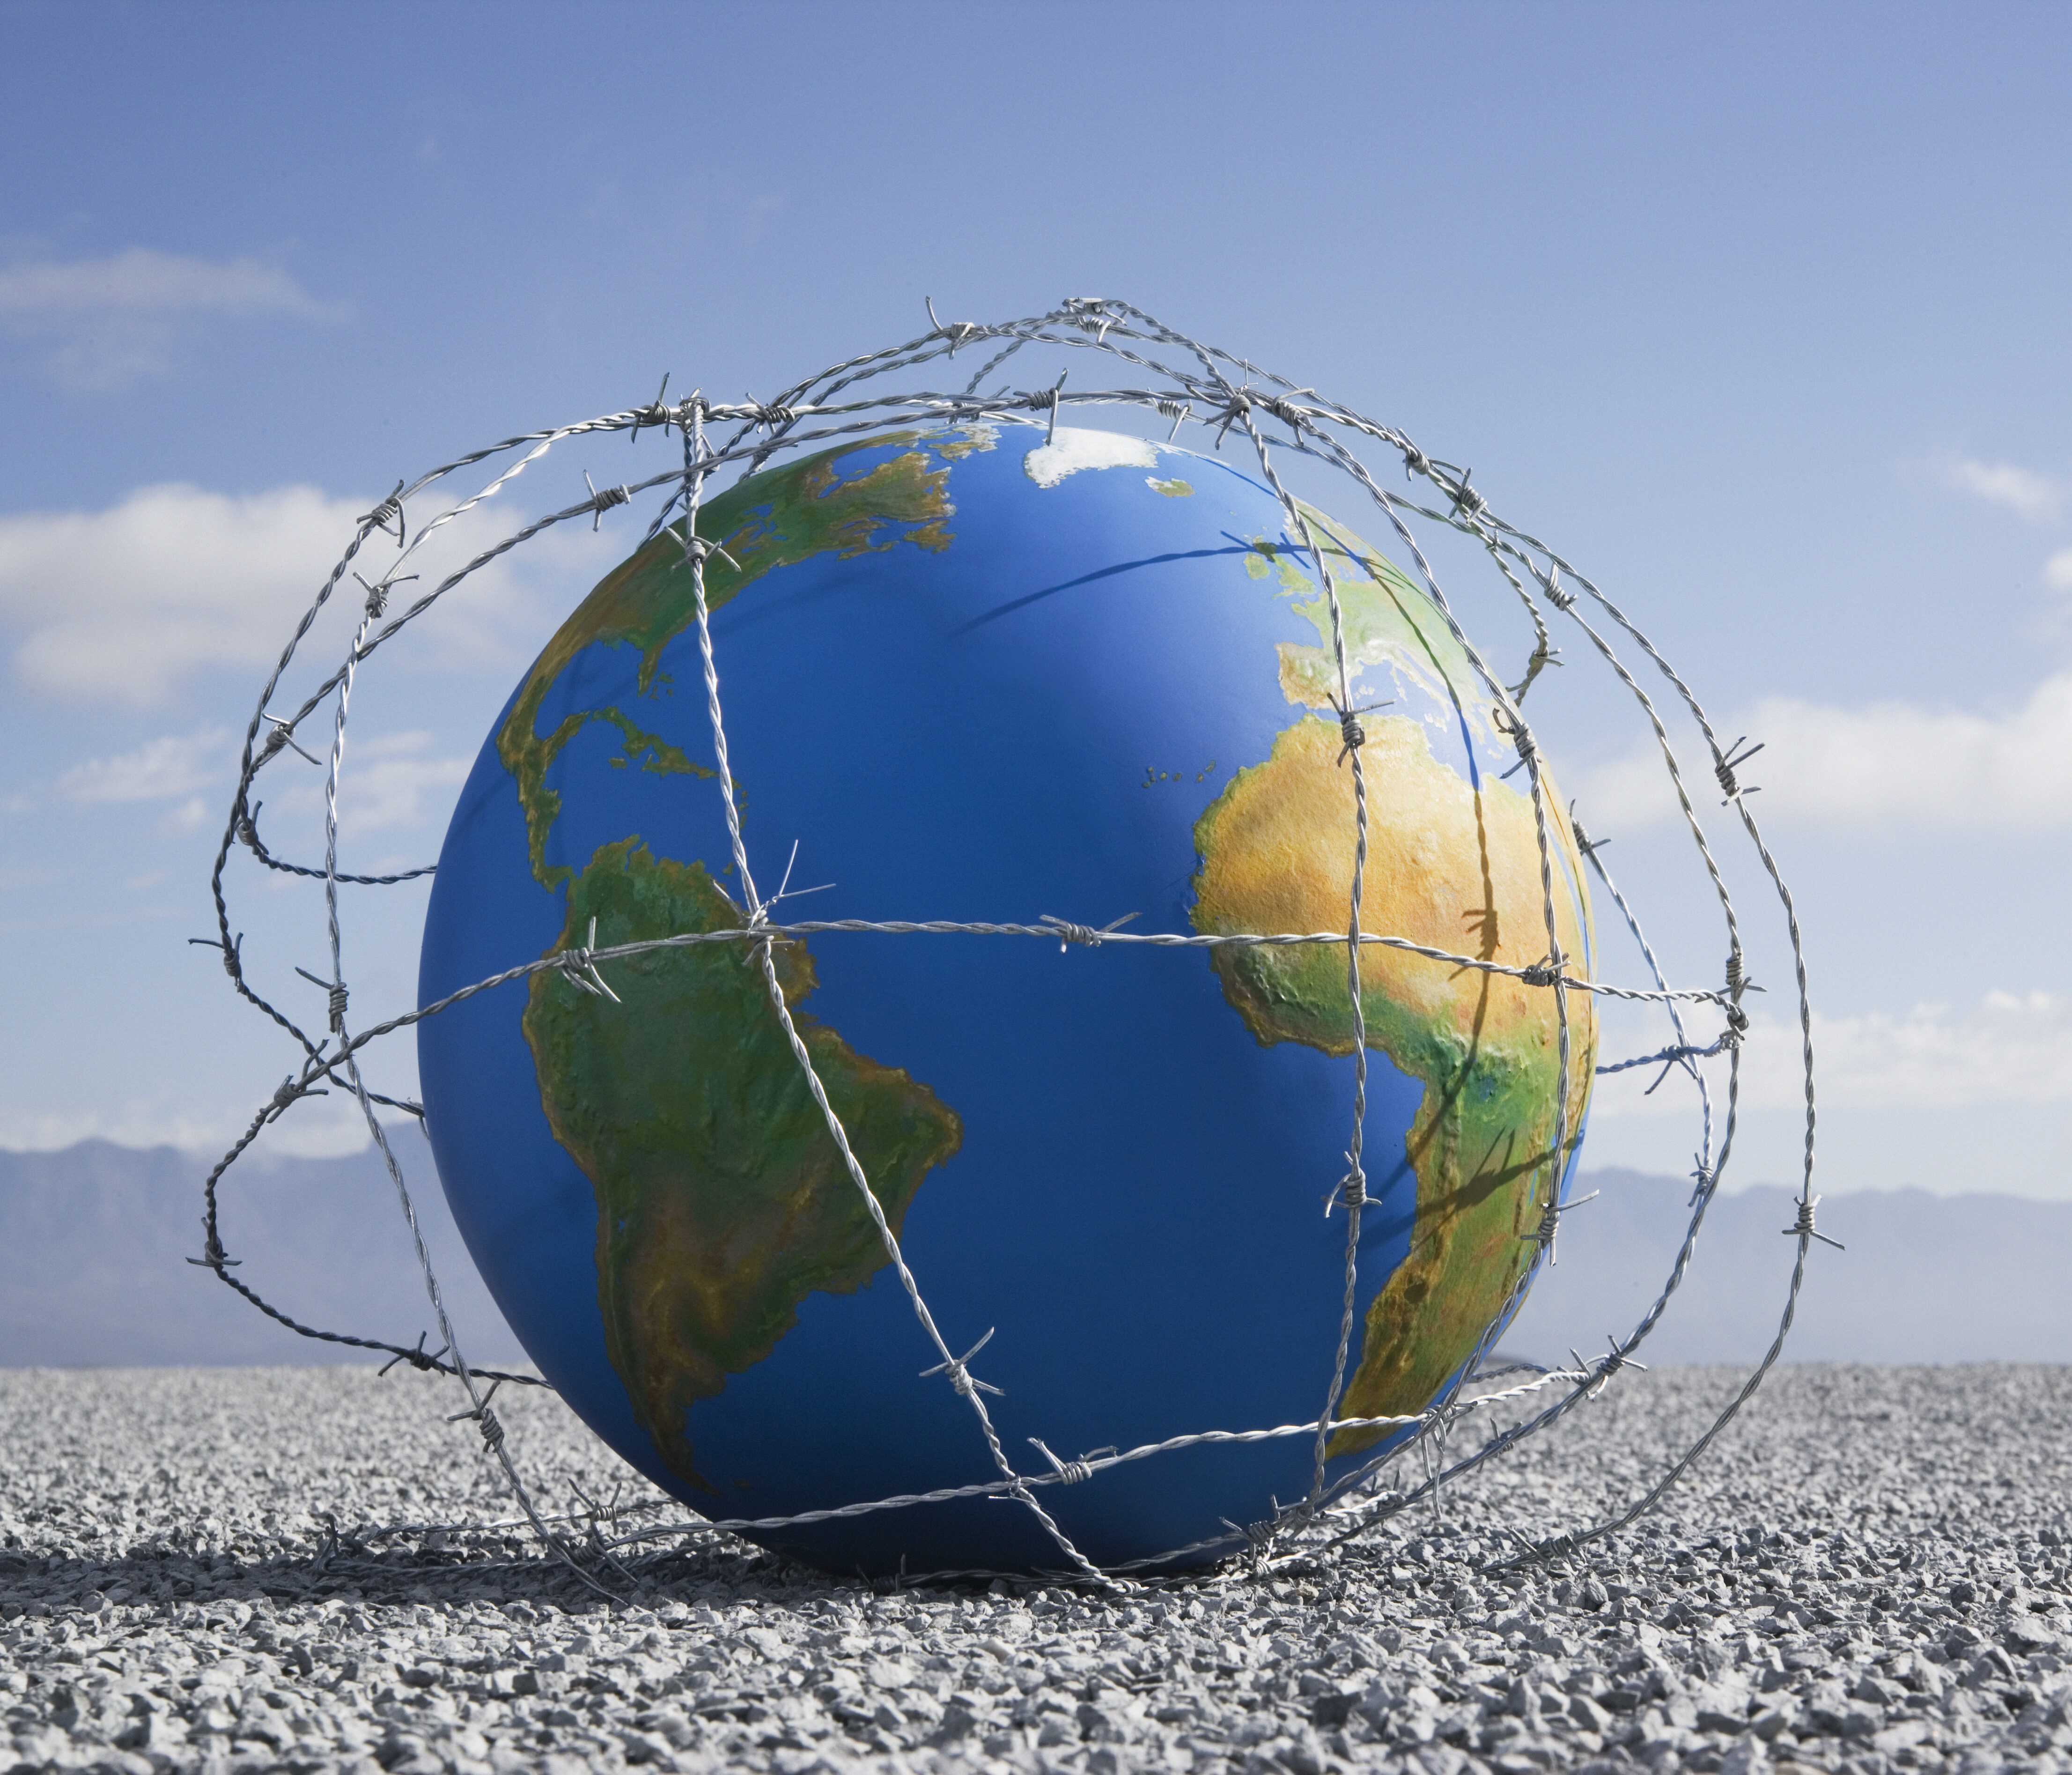 Globe with Barbed Wire